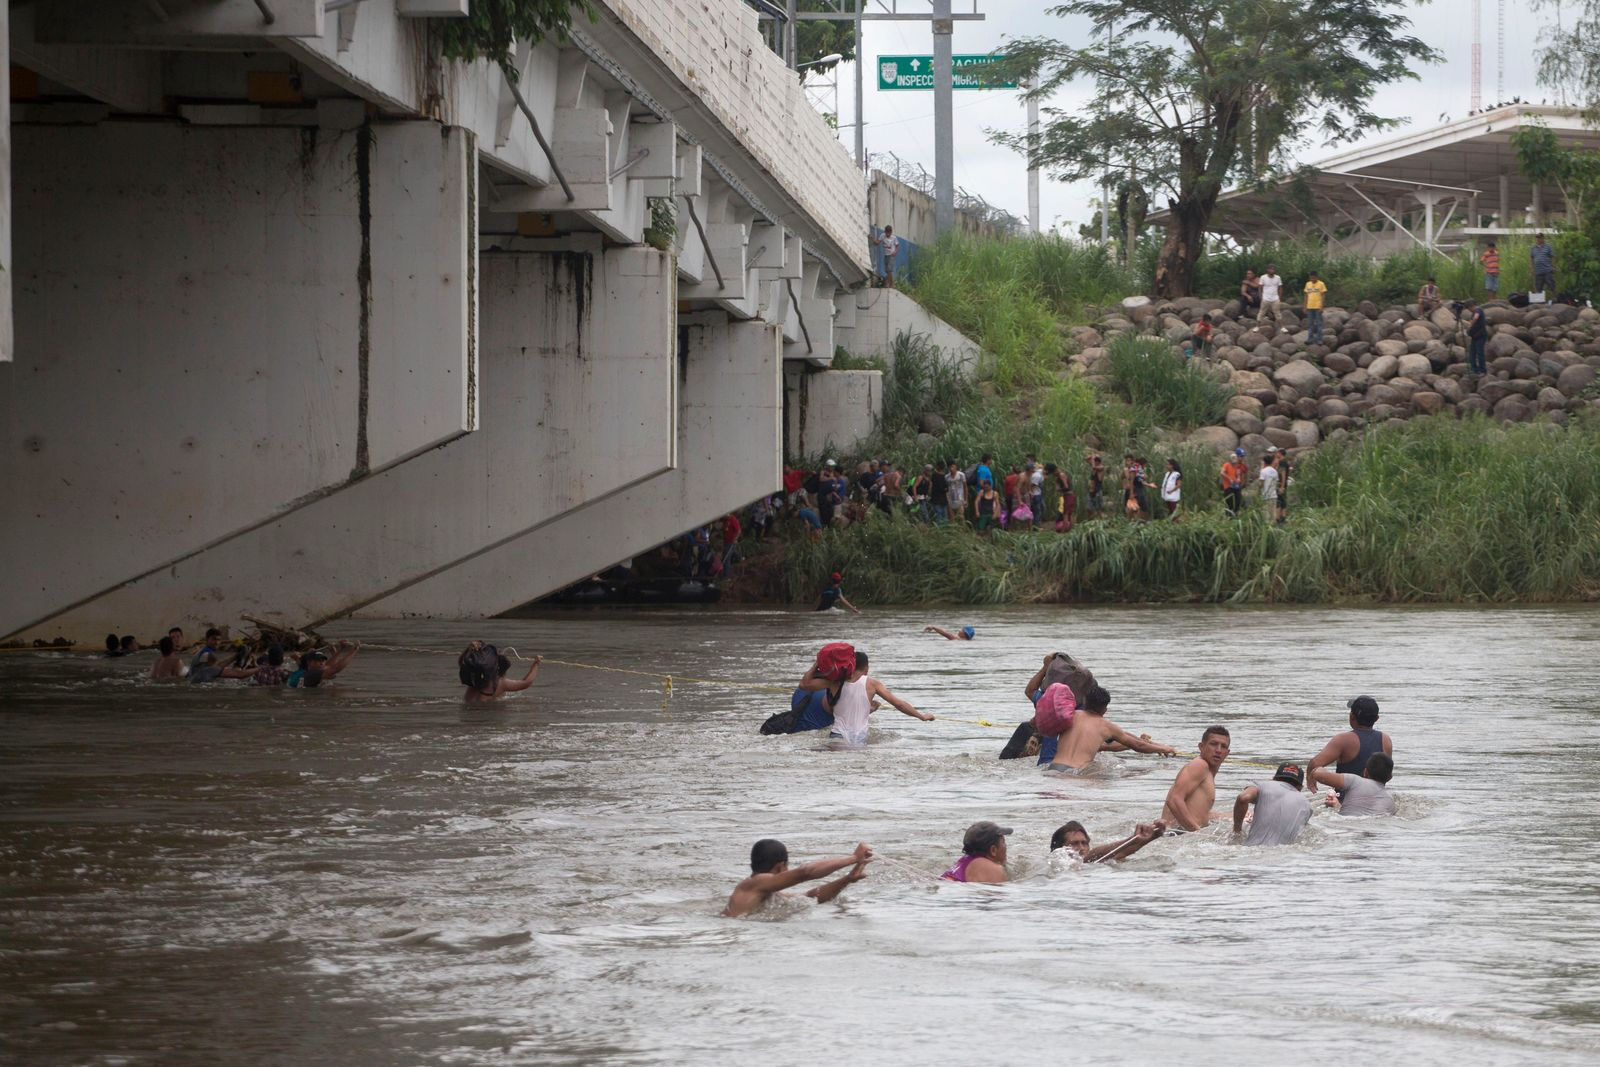 A group of Central American migrants wade across the Suchiate River, on the the border between Guatemala and Mexico, in Ciudad Hidalgo, Mexico, Saturday, Oct. 20, 2018. (AP Photo/Moises Castillo)